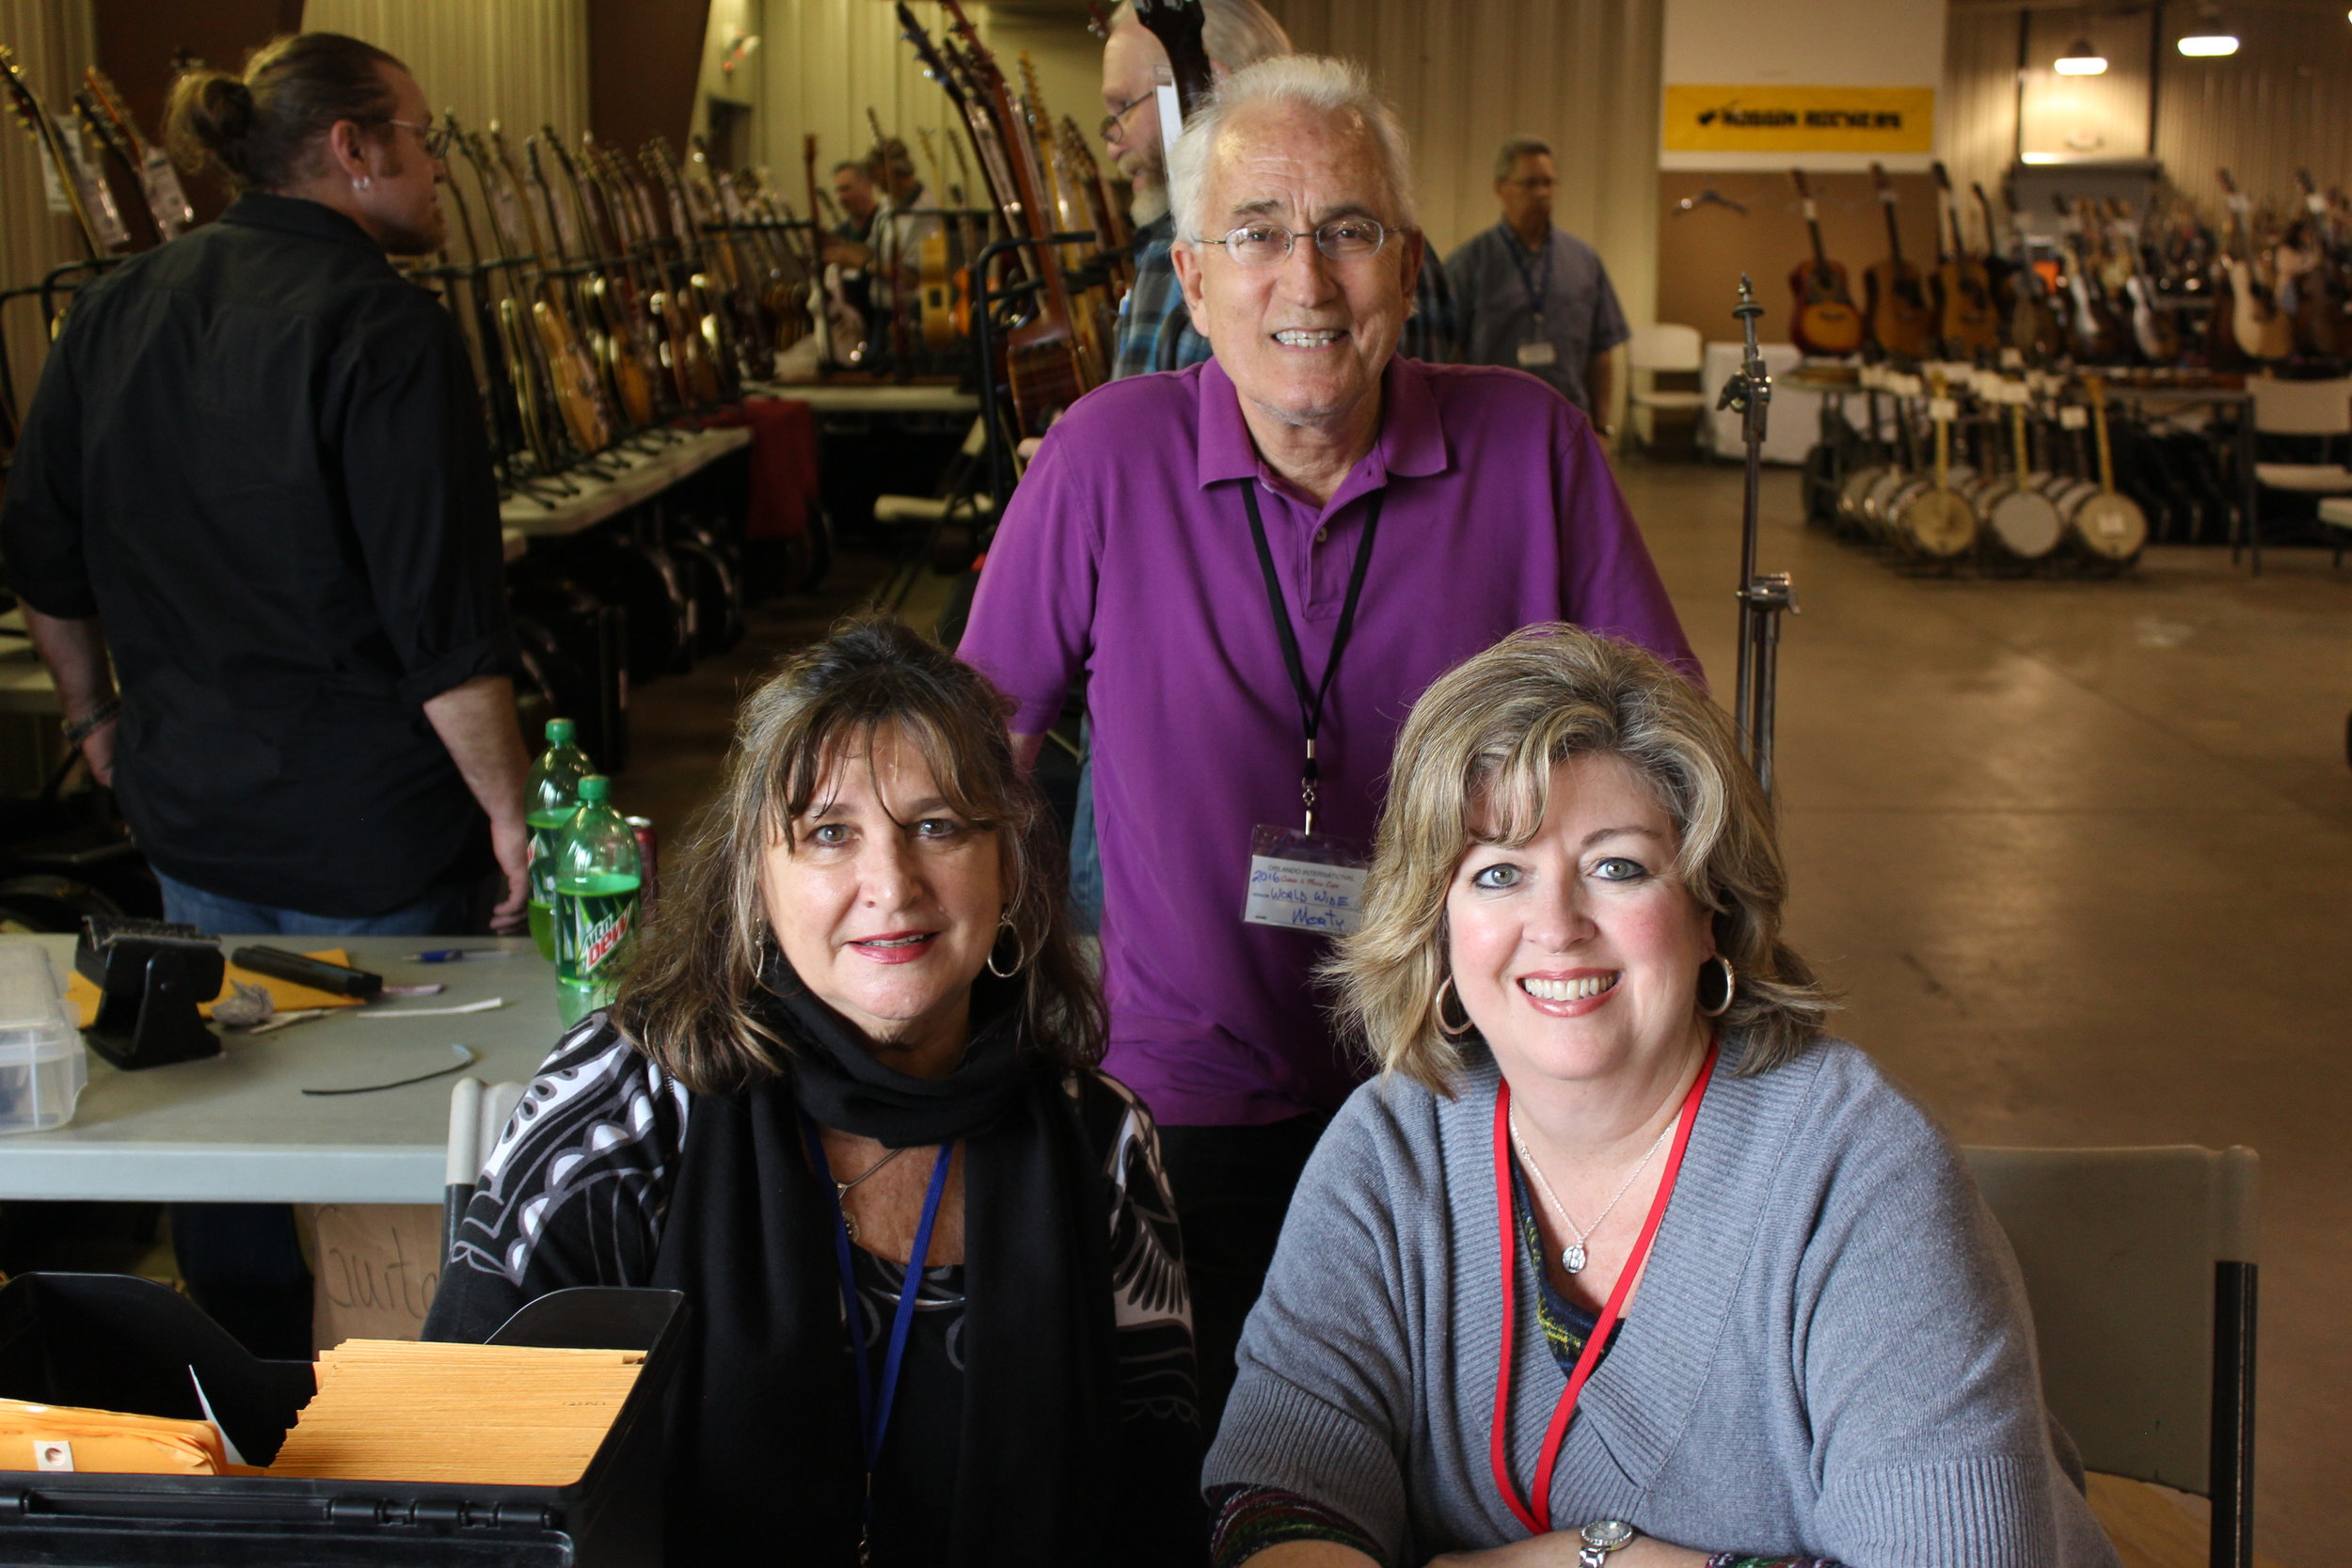 Morty Beckman, Orlando Guitar Show Producer & His Beautiful Team